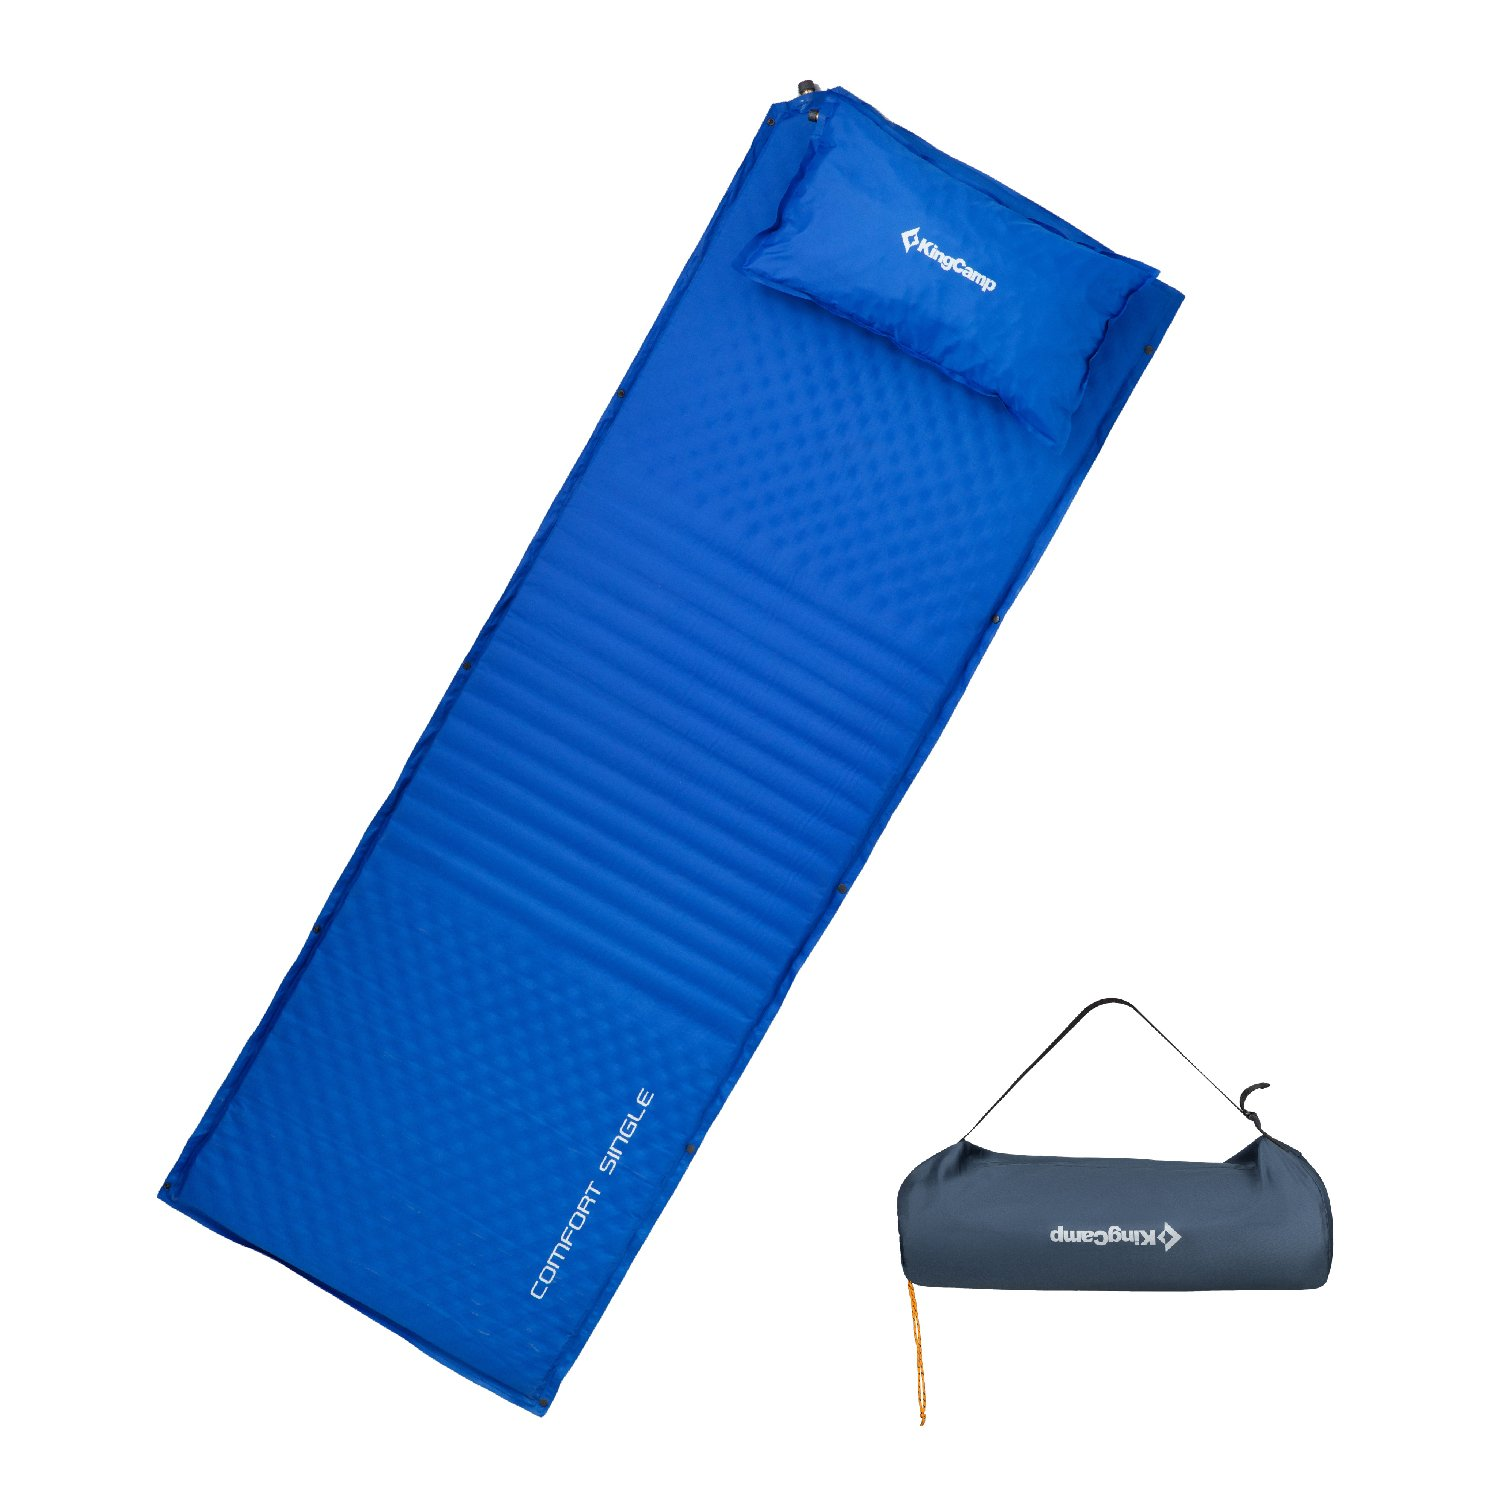 KingCamp Triple Zone XL Comfort Spliced Self-Inflating Portable Sleeping Pad Mattress 4 cm Thick with Free Oversize Self-Inflating Pillow